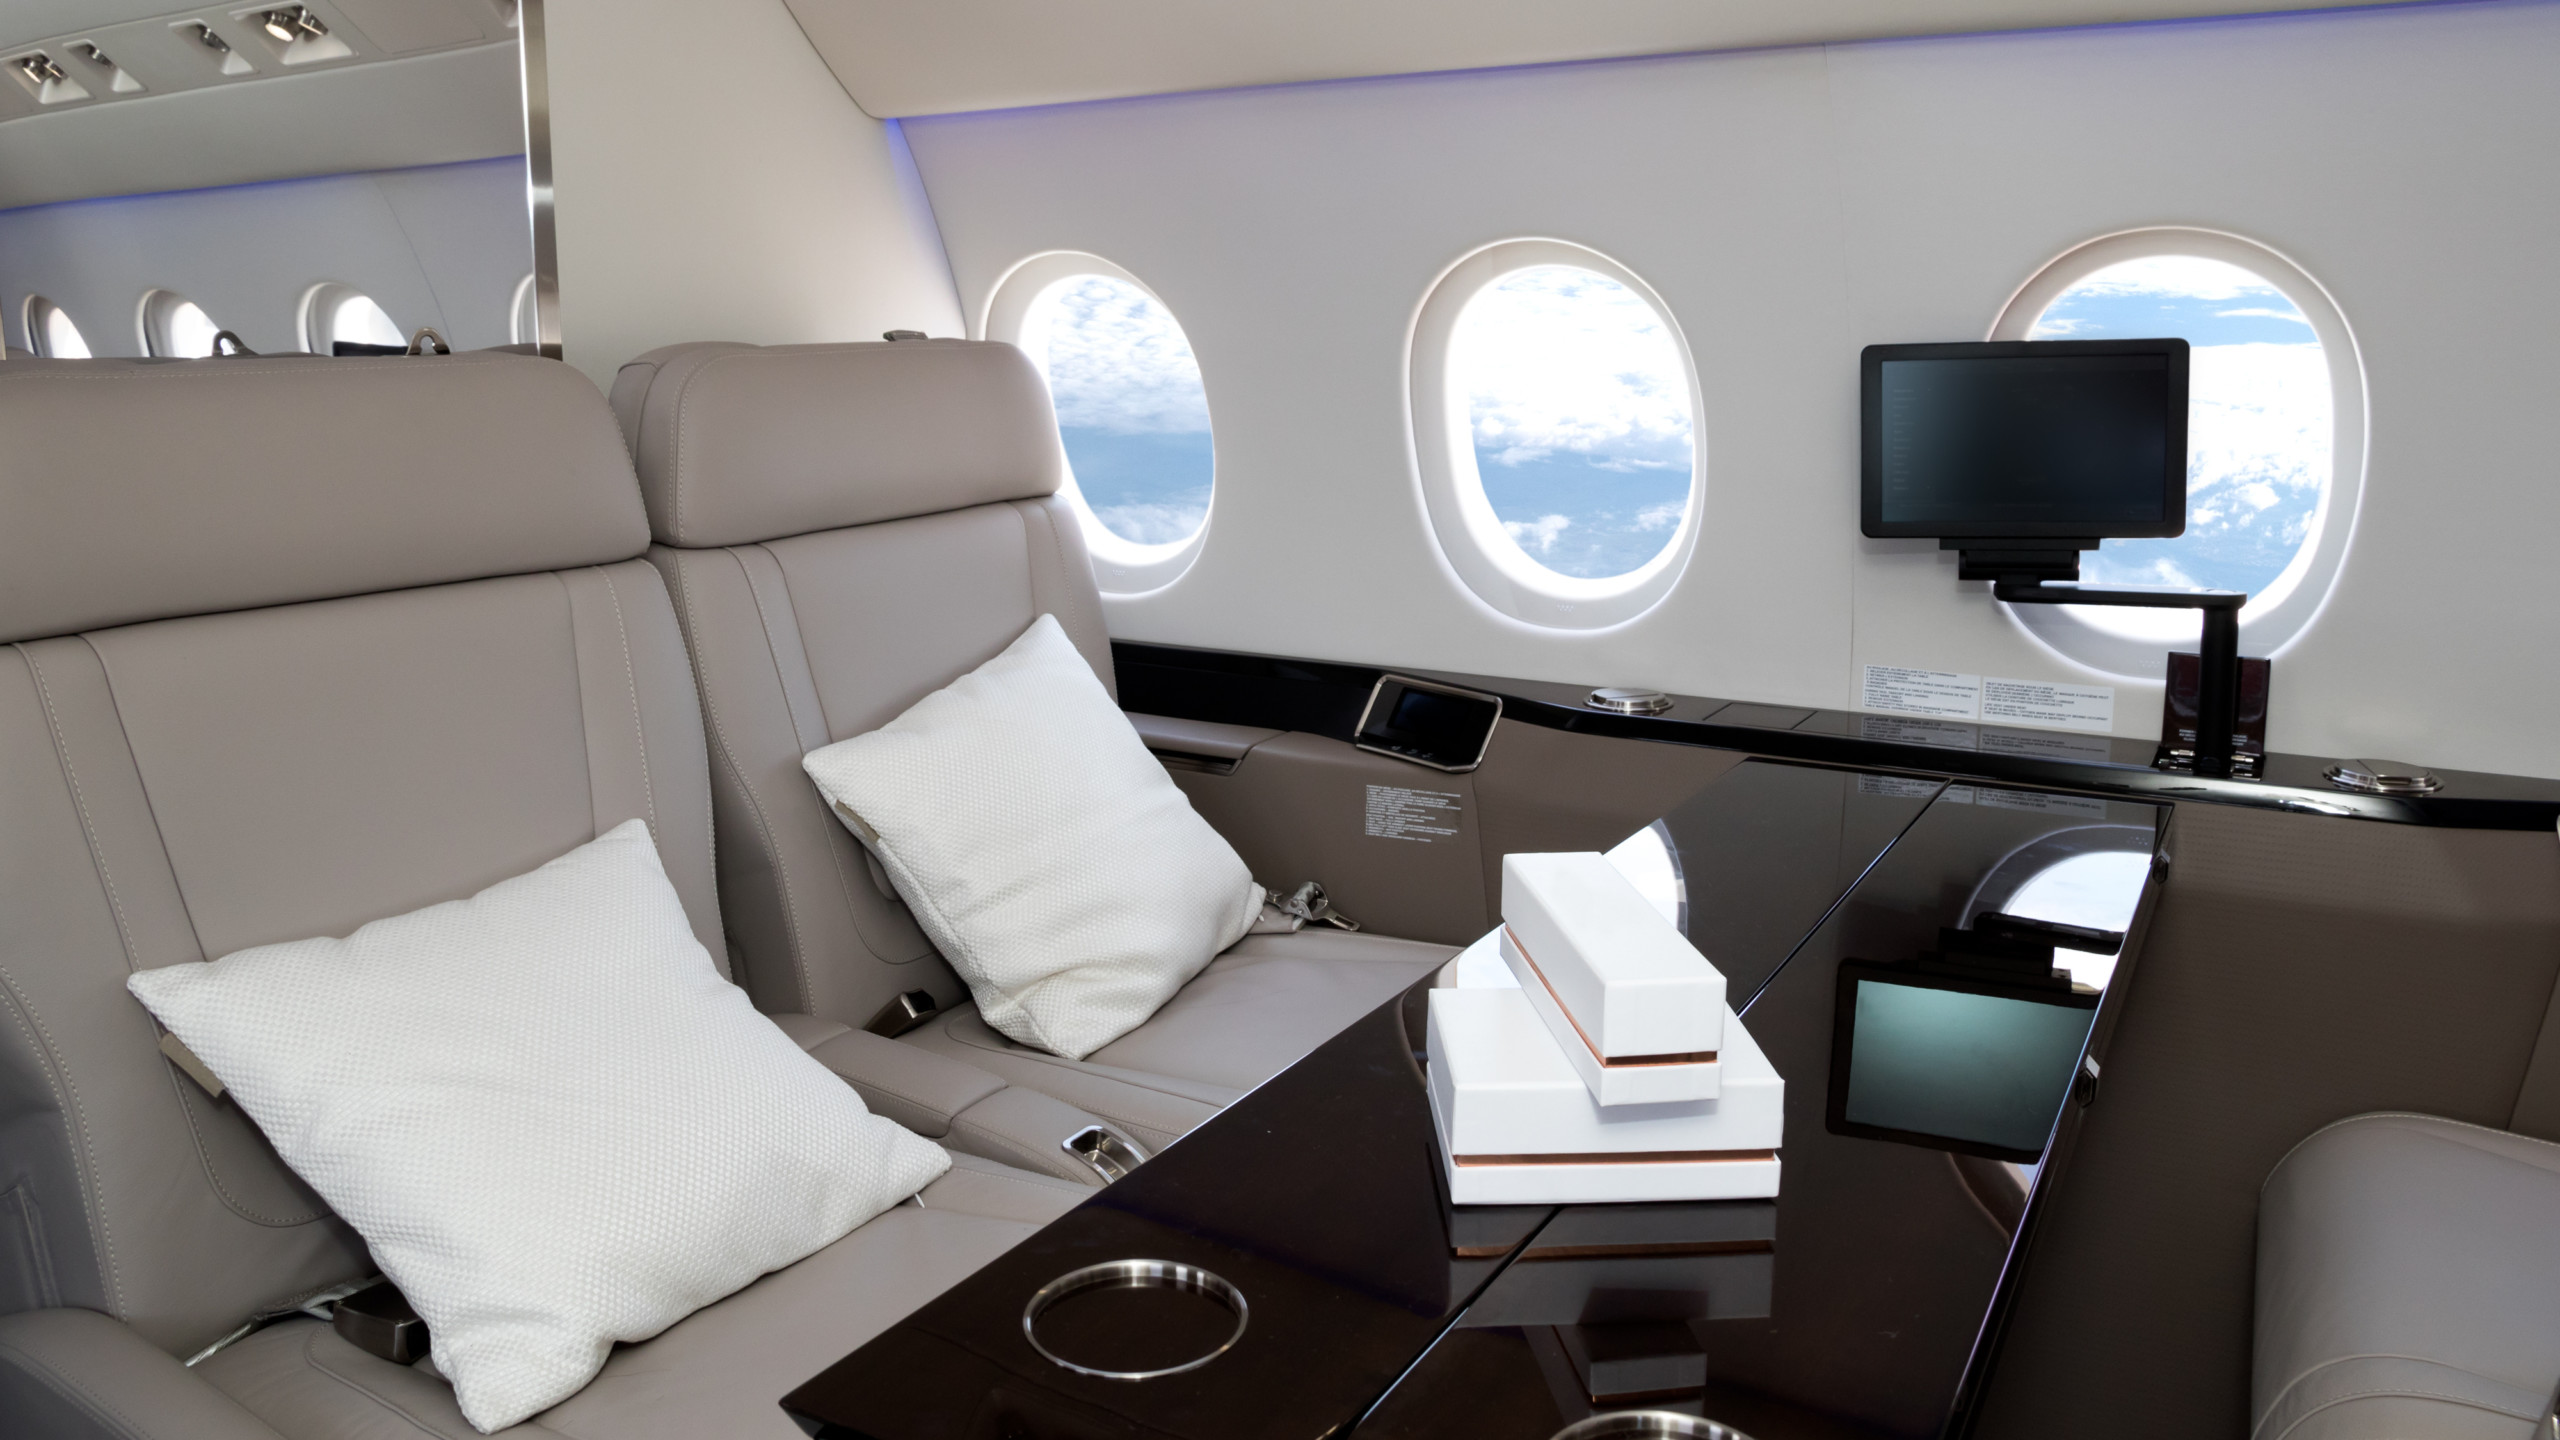 Will Major Airline Cabins Catch up to the Innovations Currently Found in Business and Private Jets?